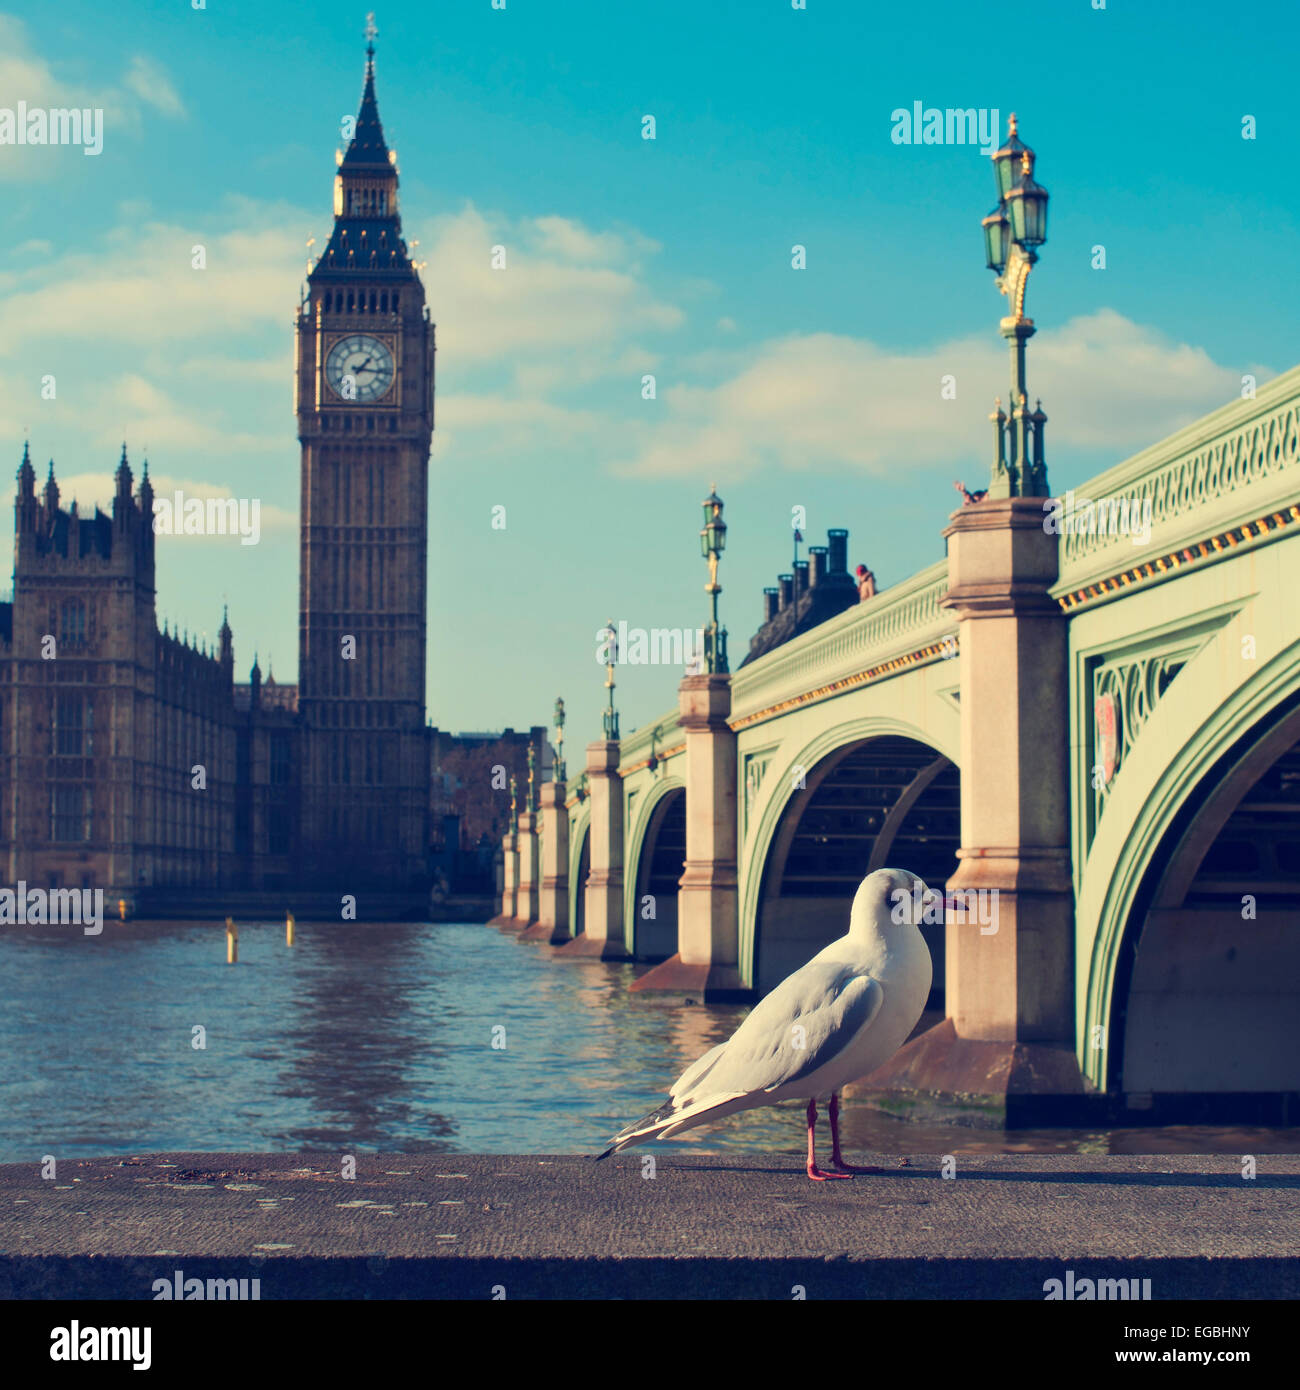 a view of the Big Ben, the River Thames and the Westminster Bridge, with a filter effect - Stock Image